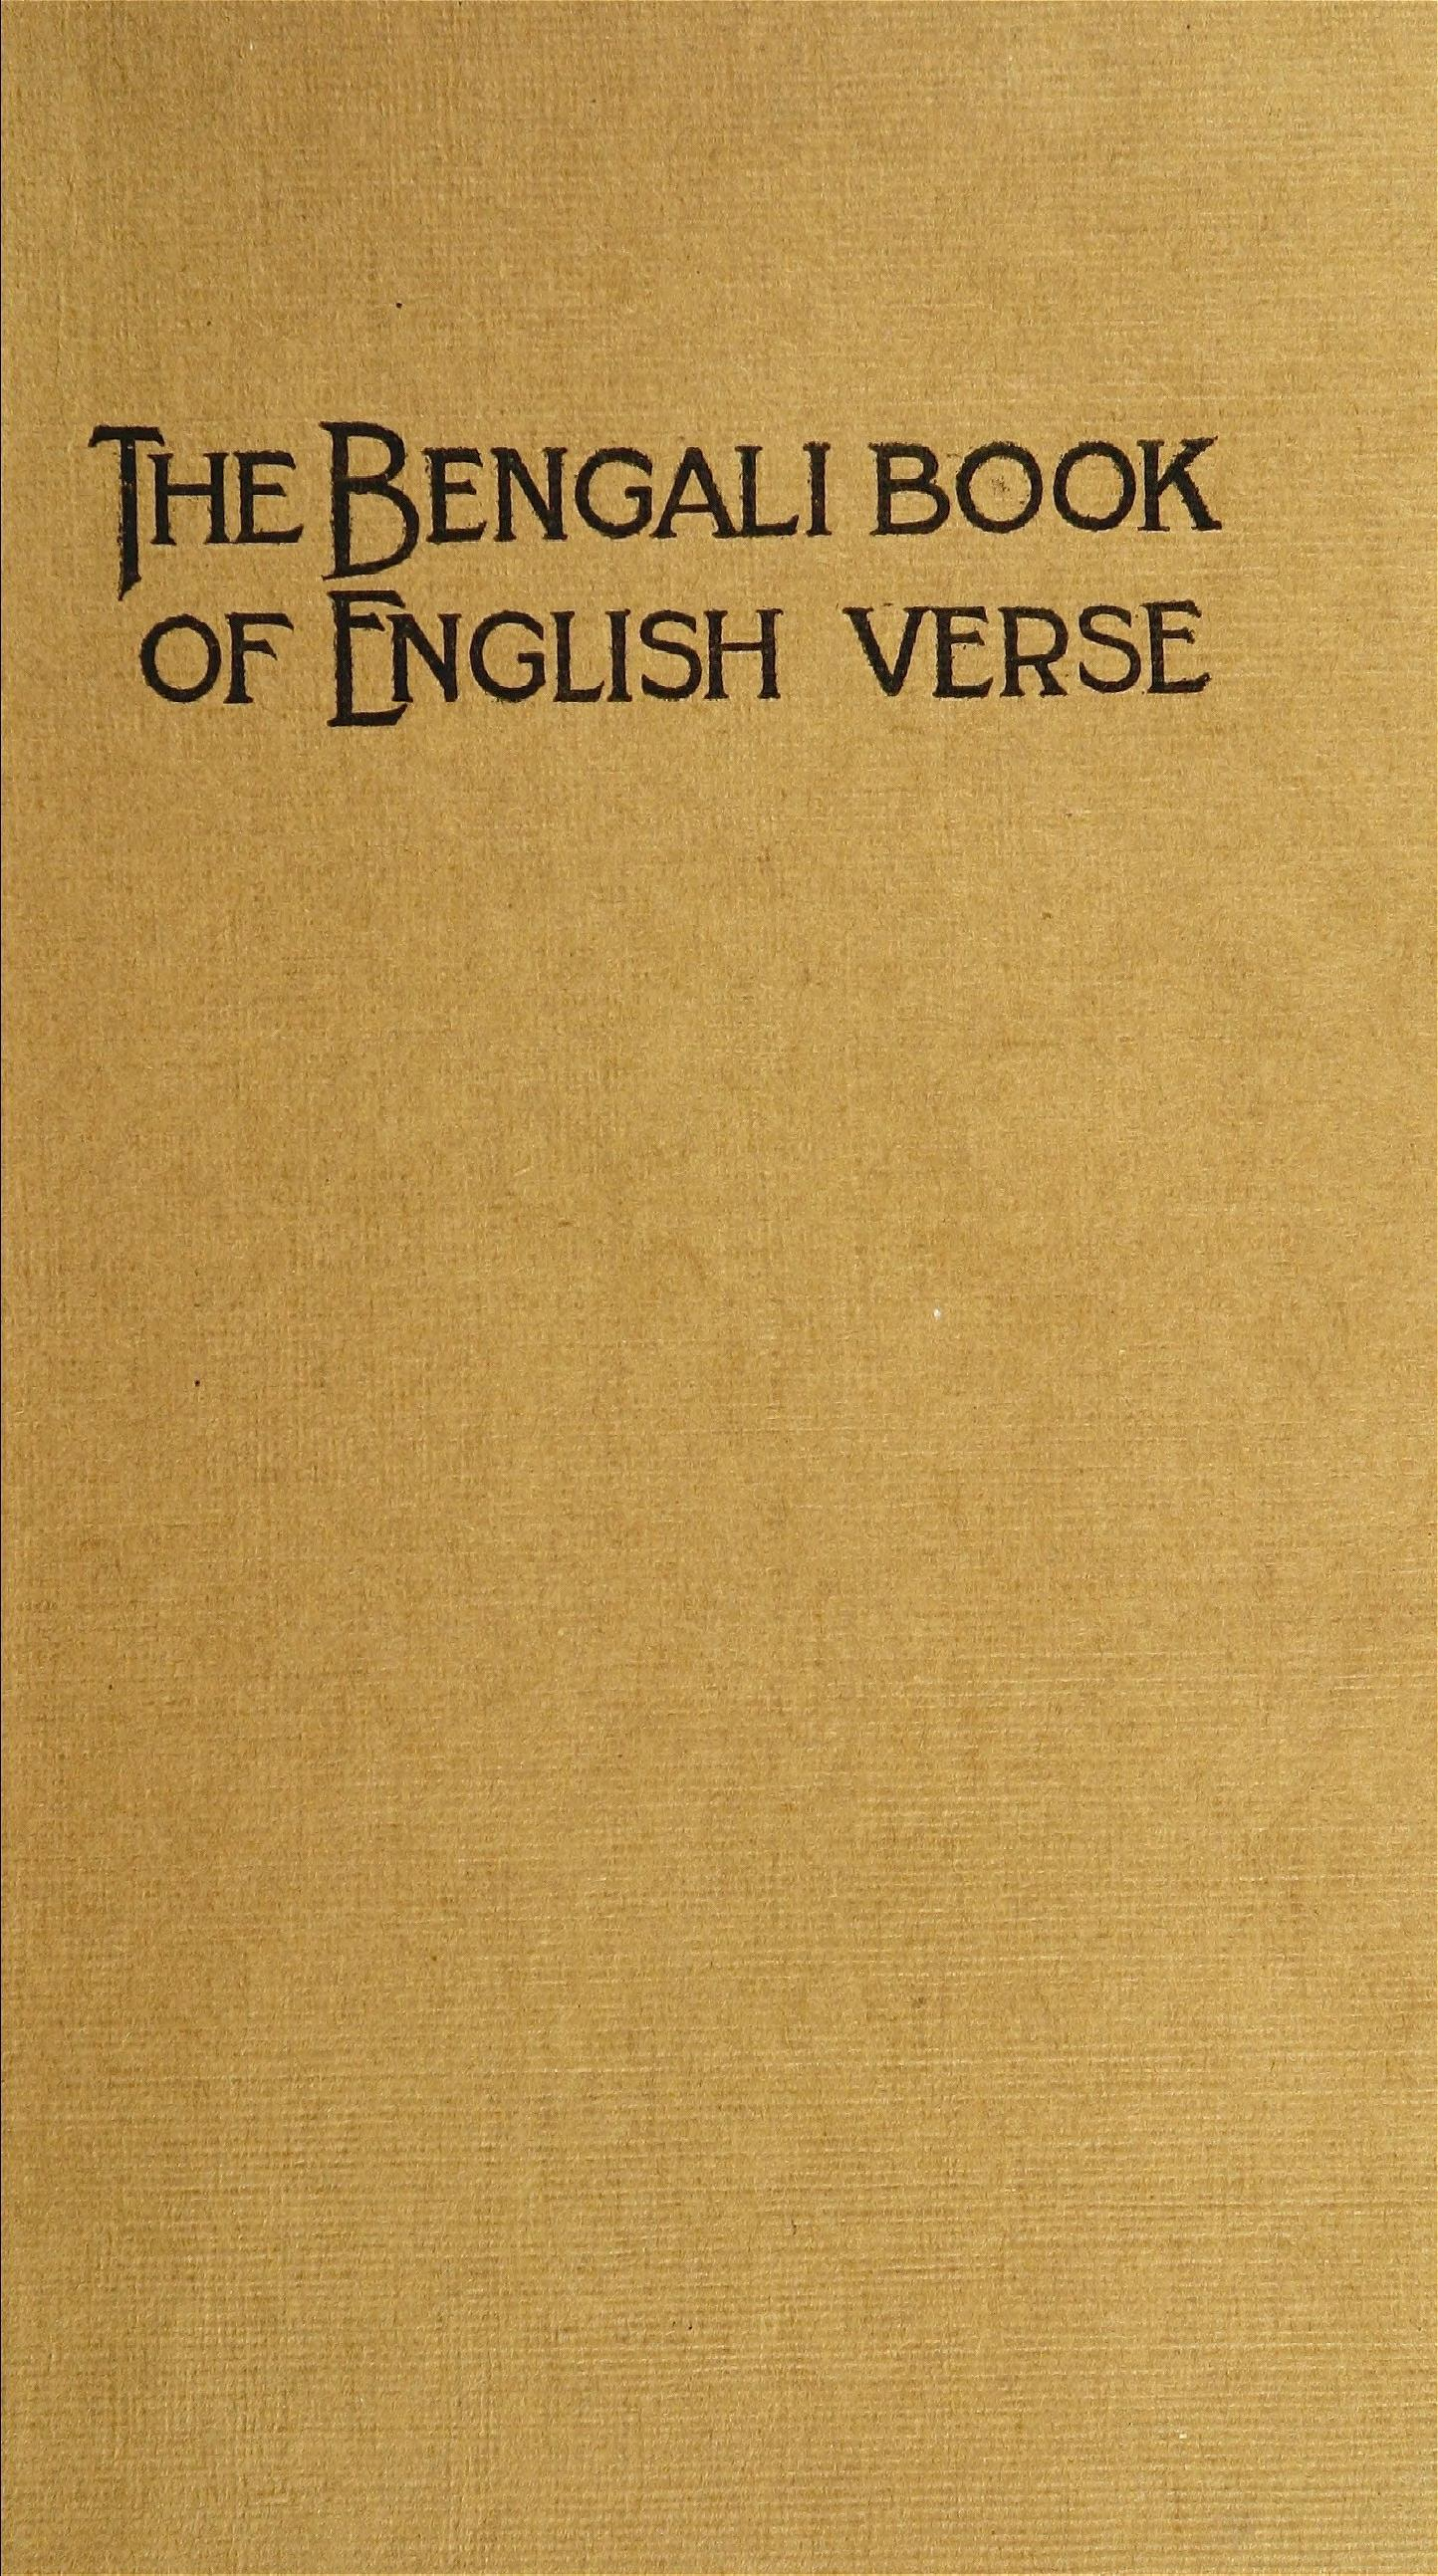 The Bengali Book of English Verse Cover.jpg